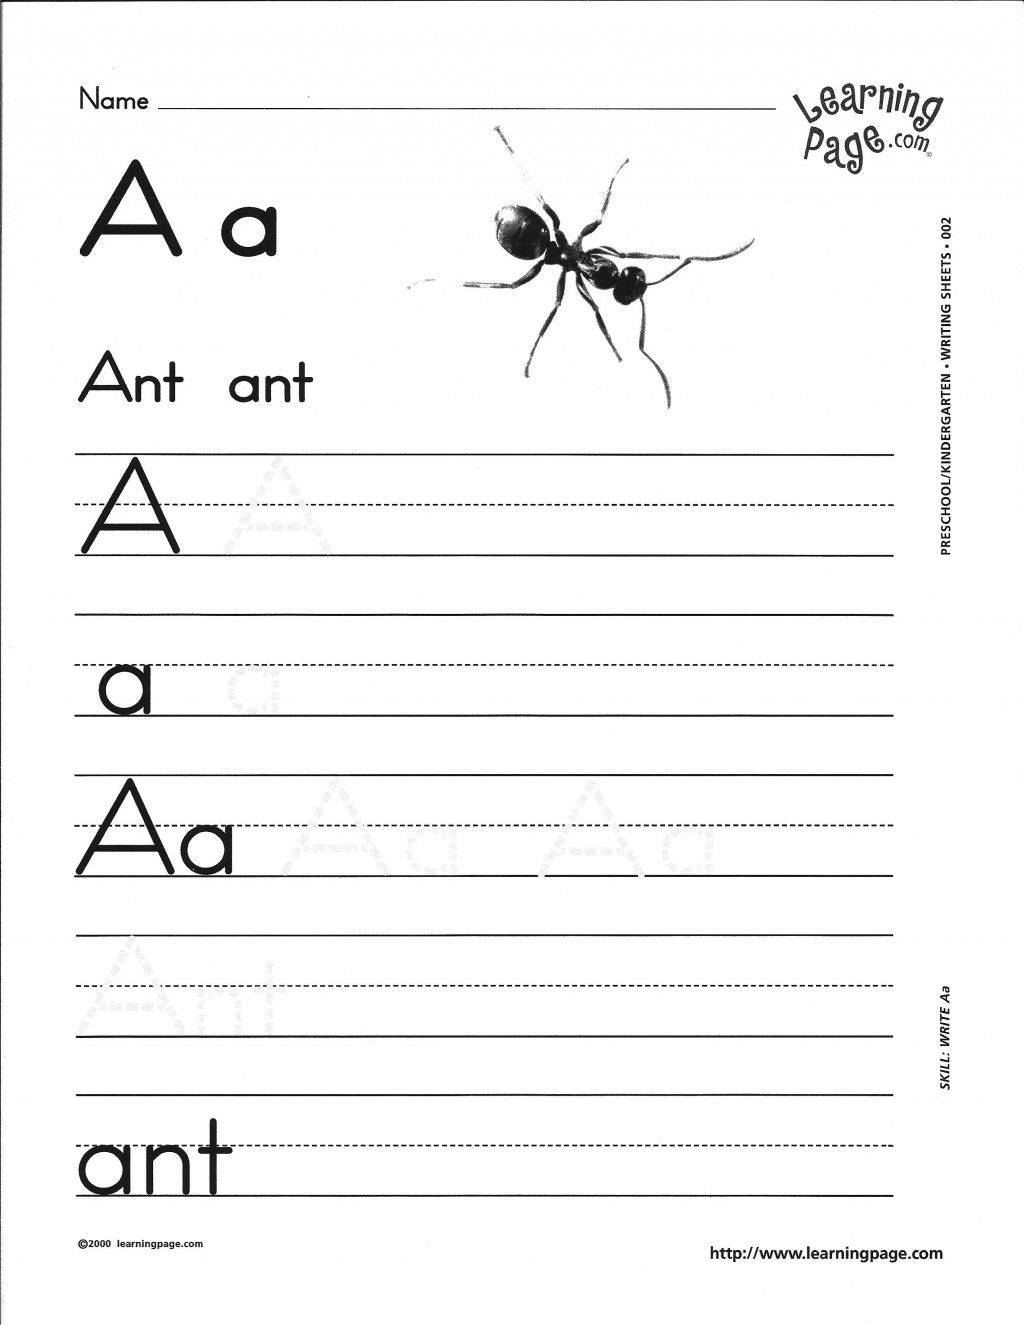 17 Activities To Teach Alphabet Recognition To Young